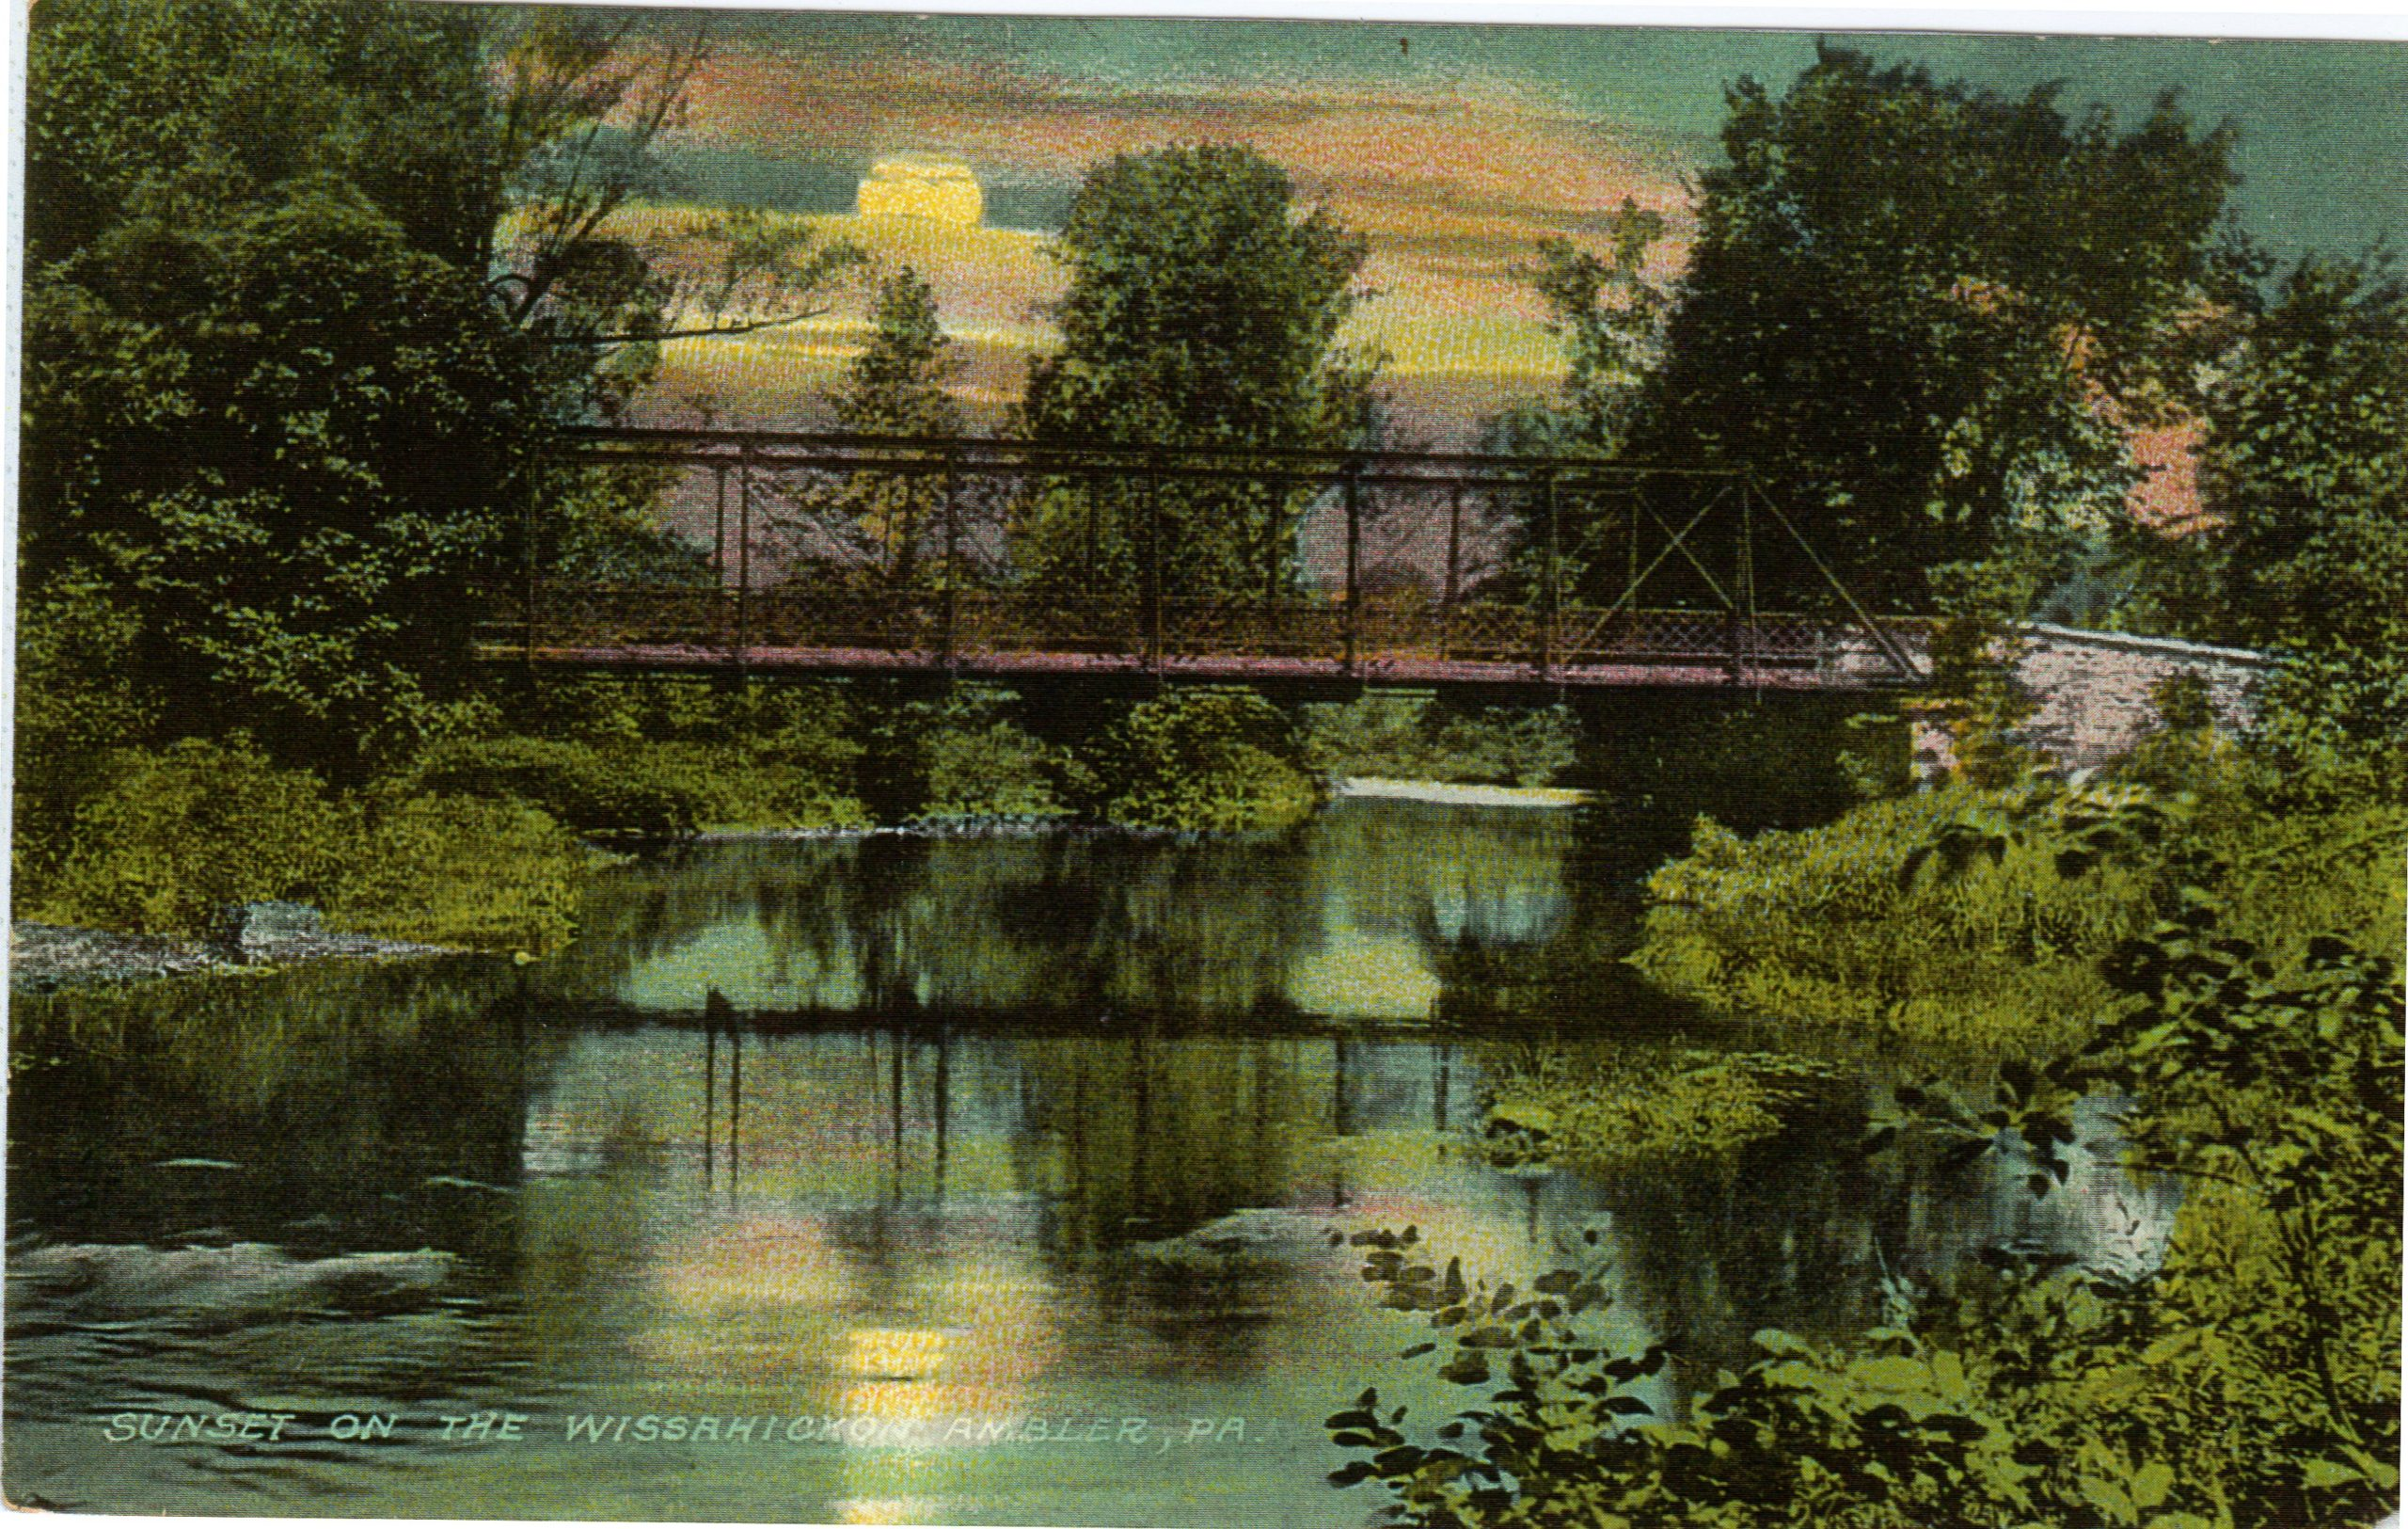 4125.40 Ambler Pa Postcard_Sunset on the Wissahickon_circa 1912